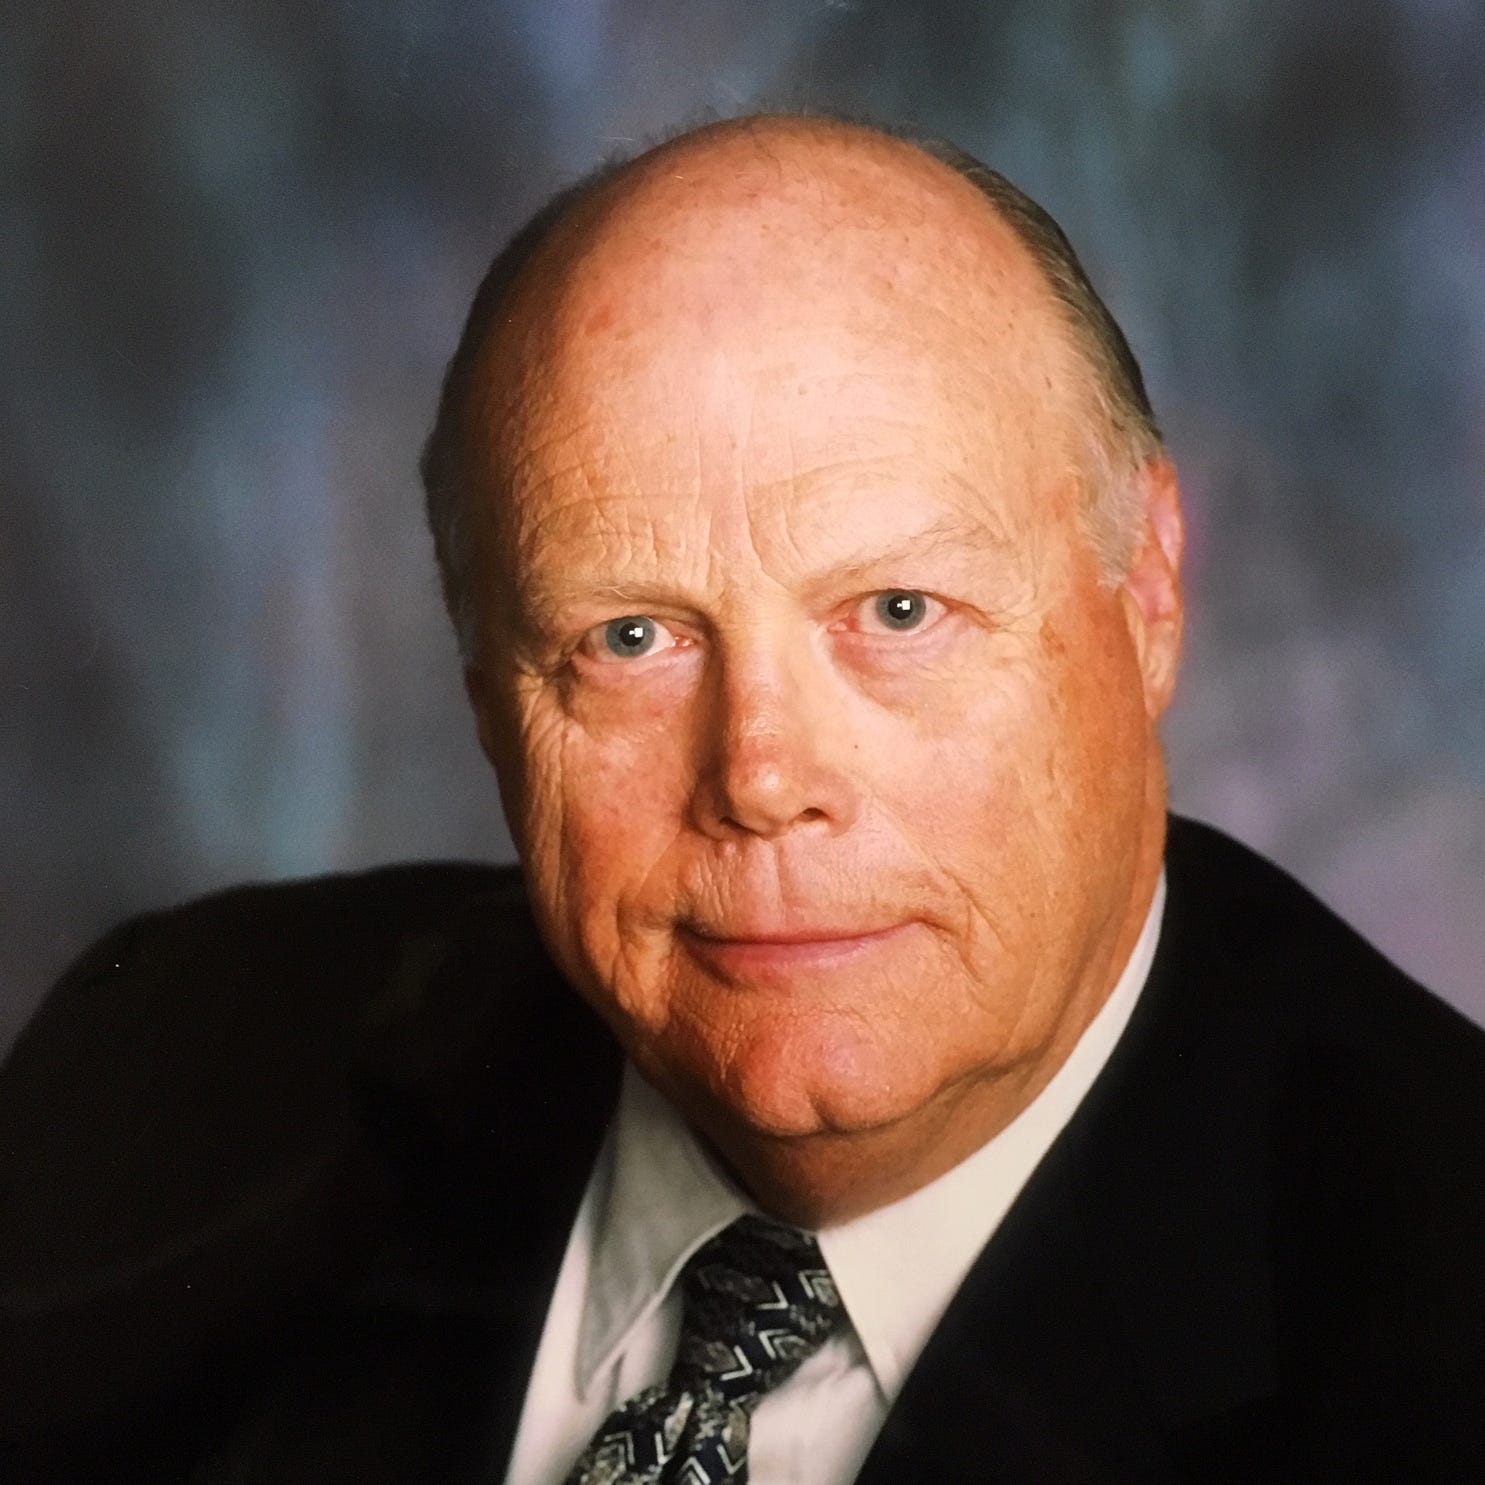 Community of Deming and Luna County mourns the loss of Earl C. Spruiell